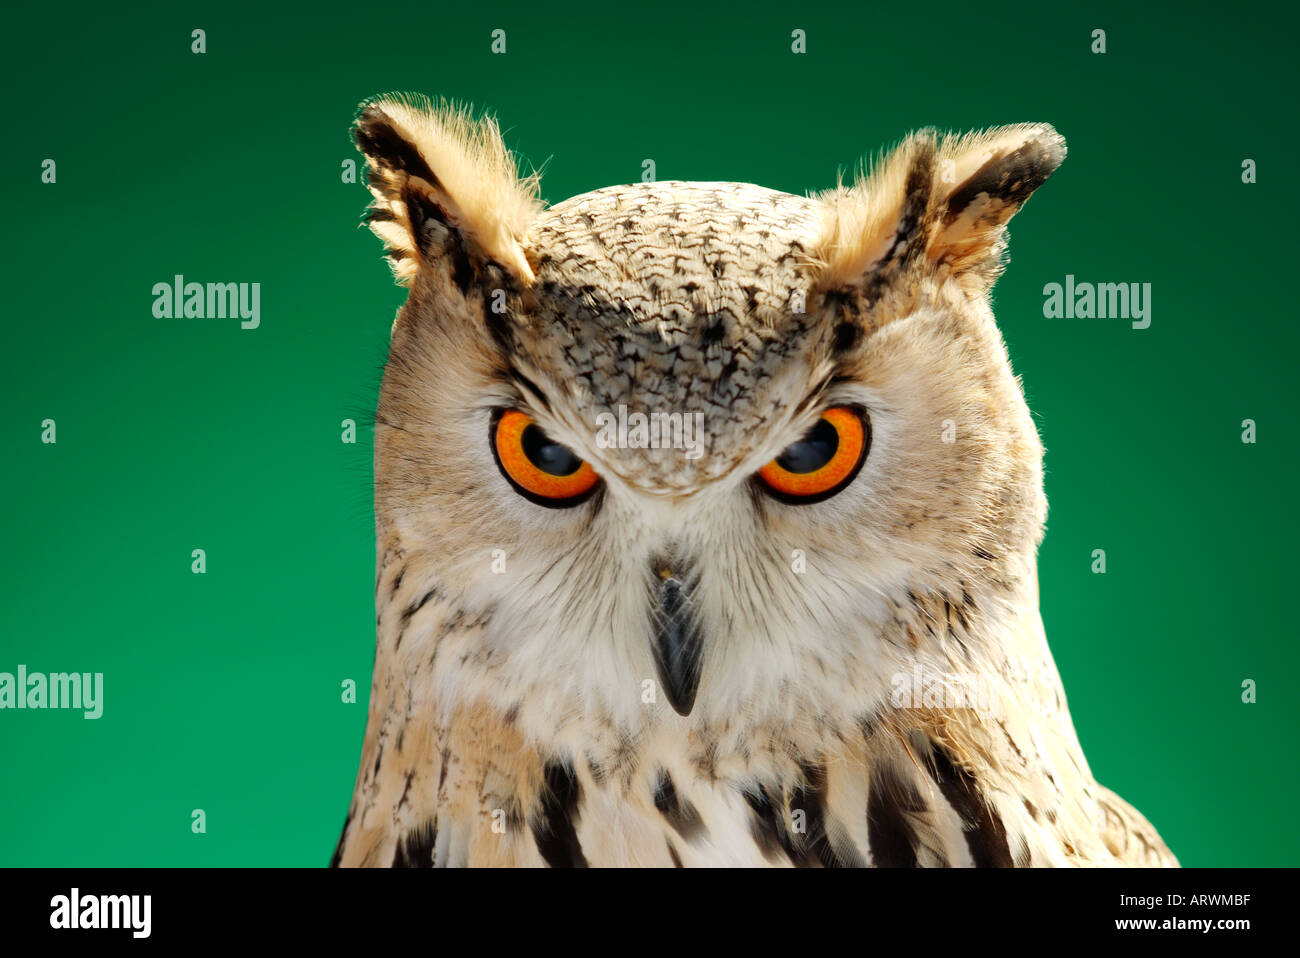 Siberian Eagle Owl Stock Photo